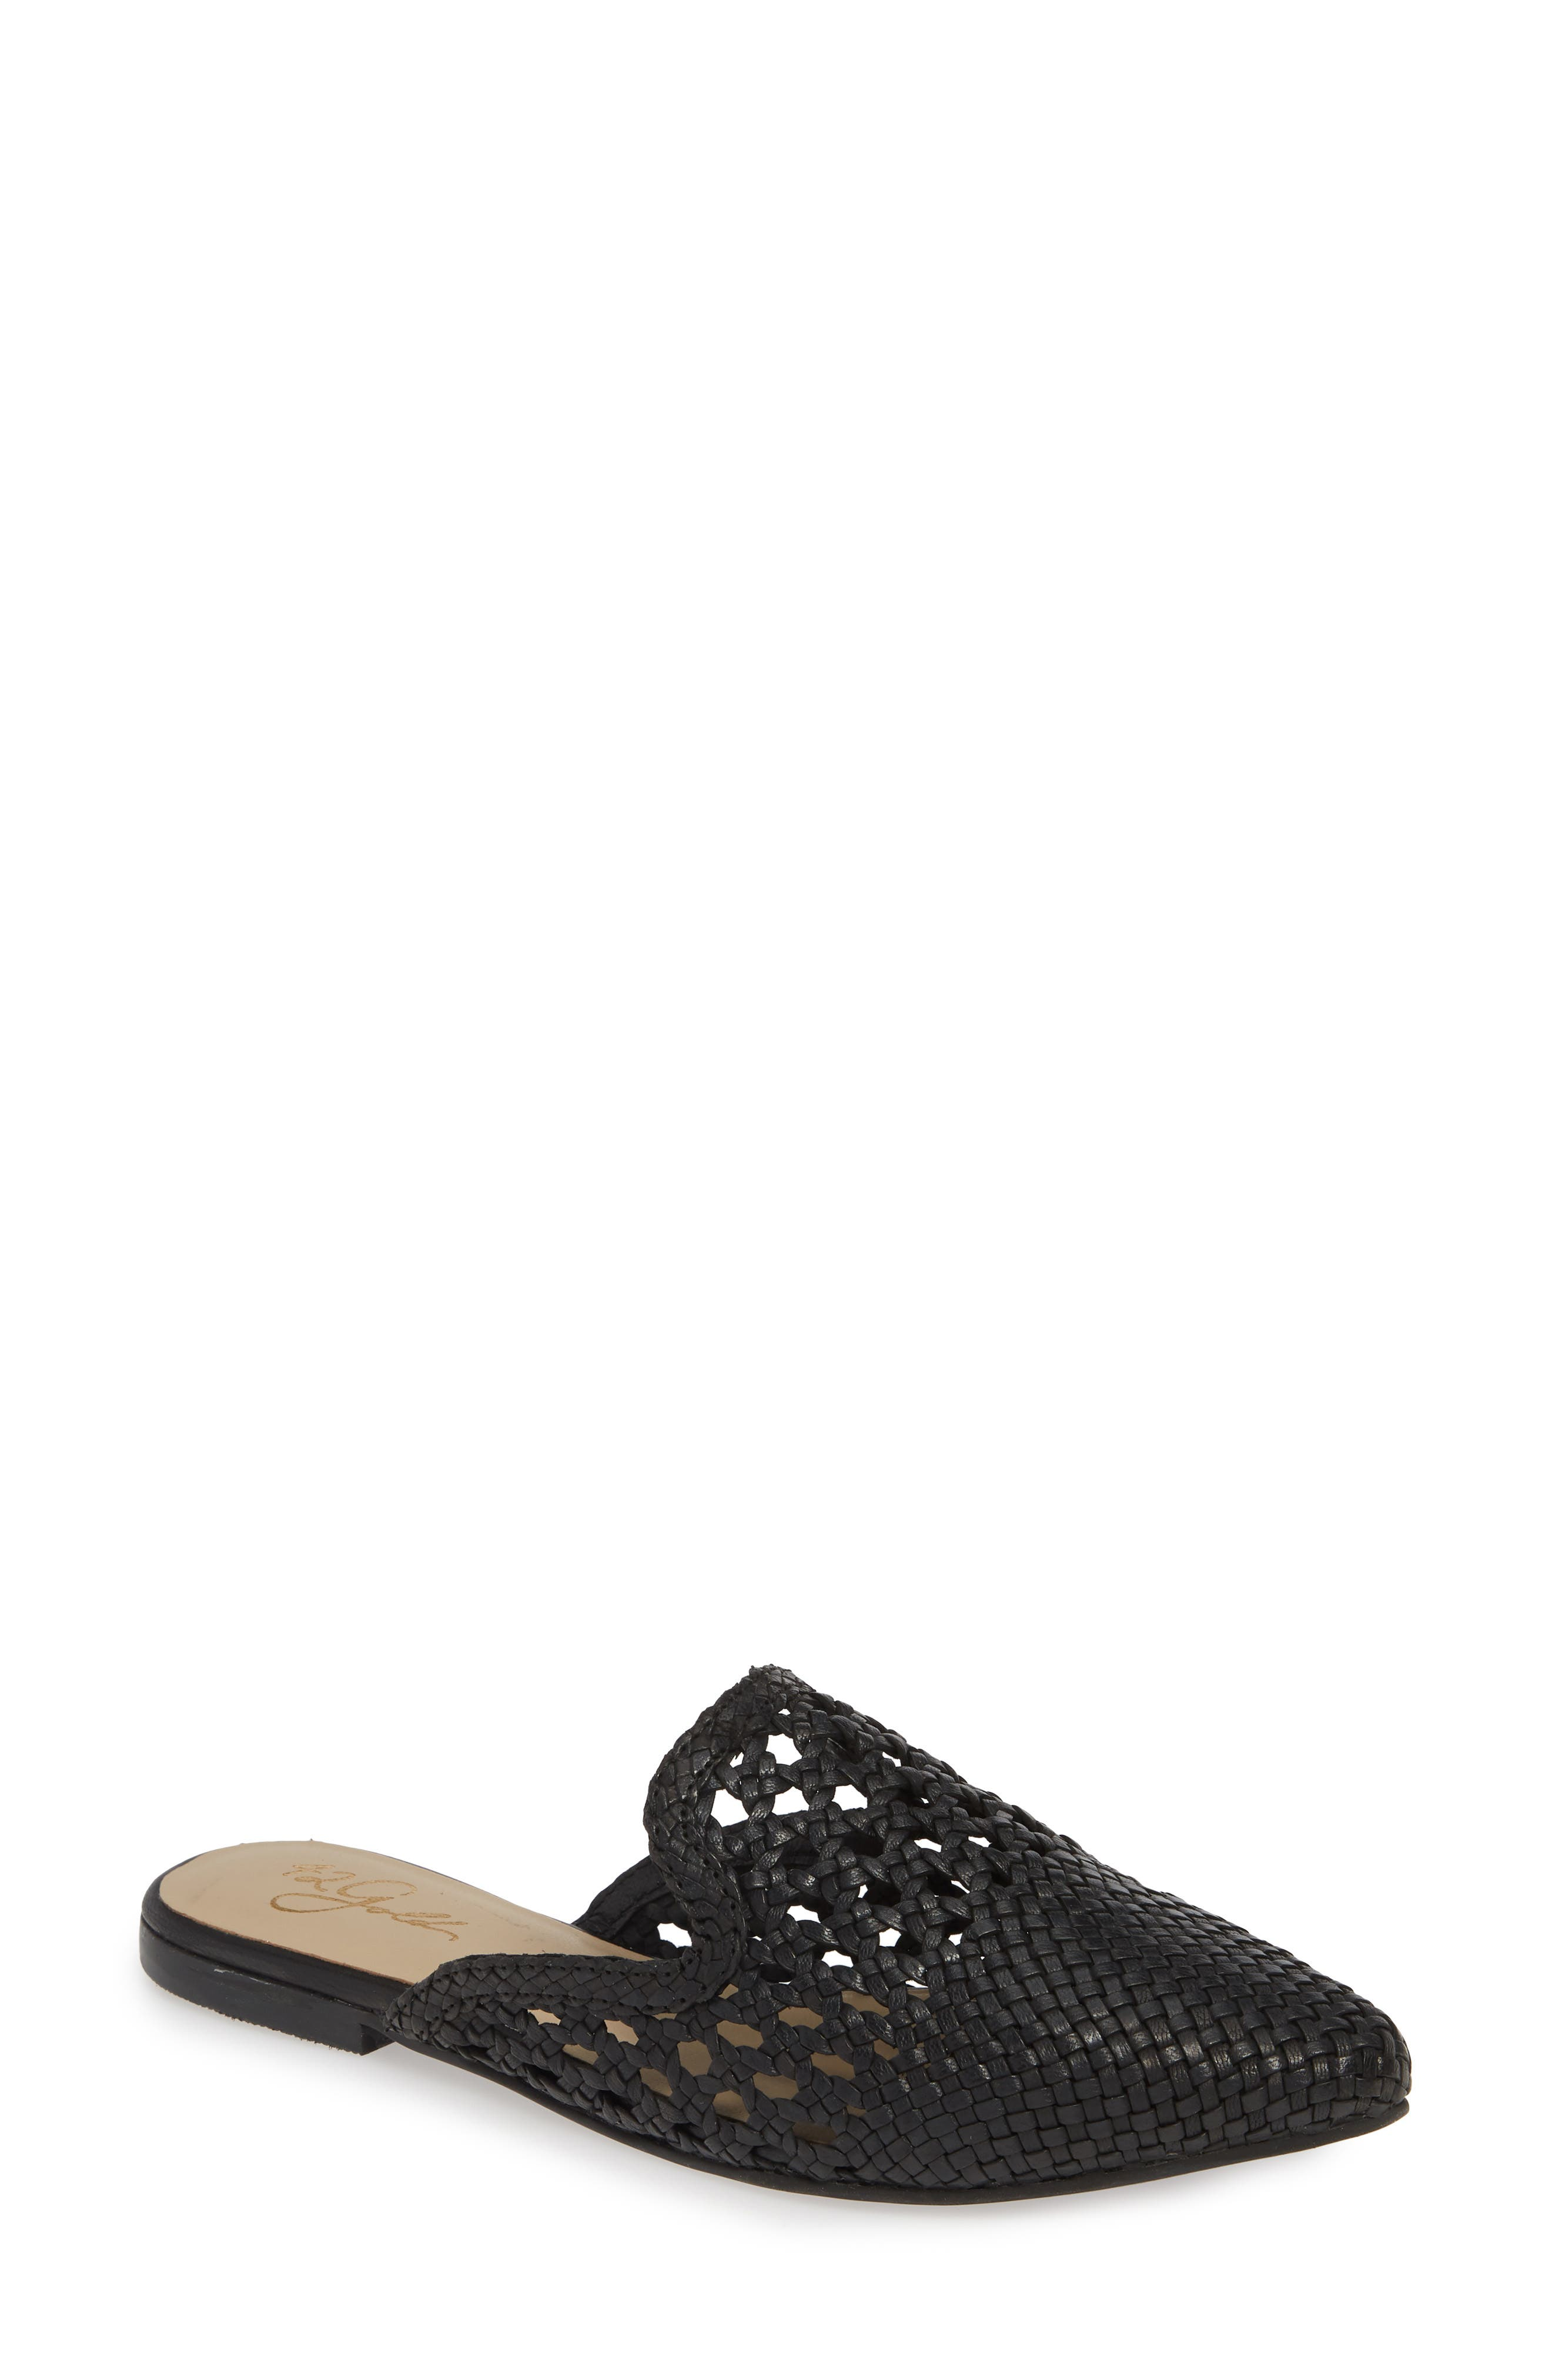 Corra Woven Loafer Mule,                             Main thumbnail 1, color,                             BLACK LEATHER